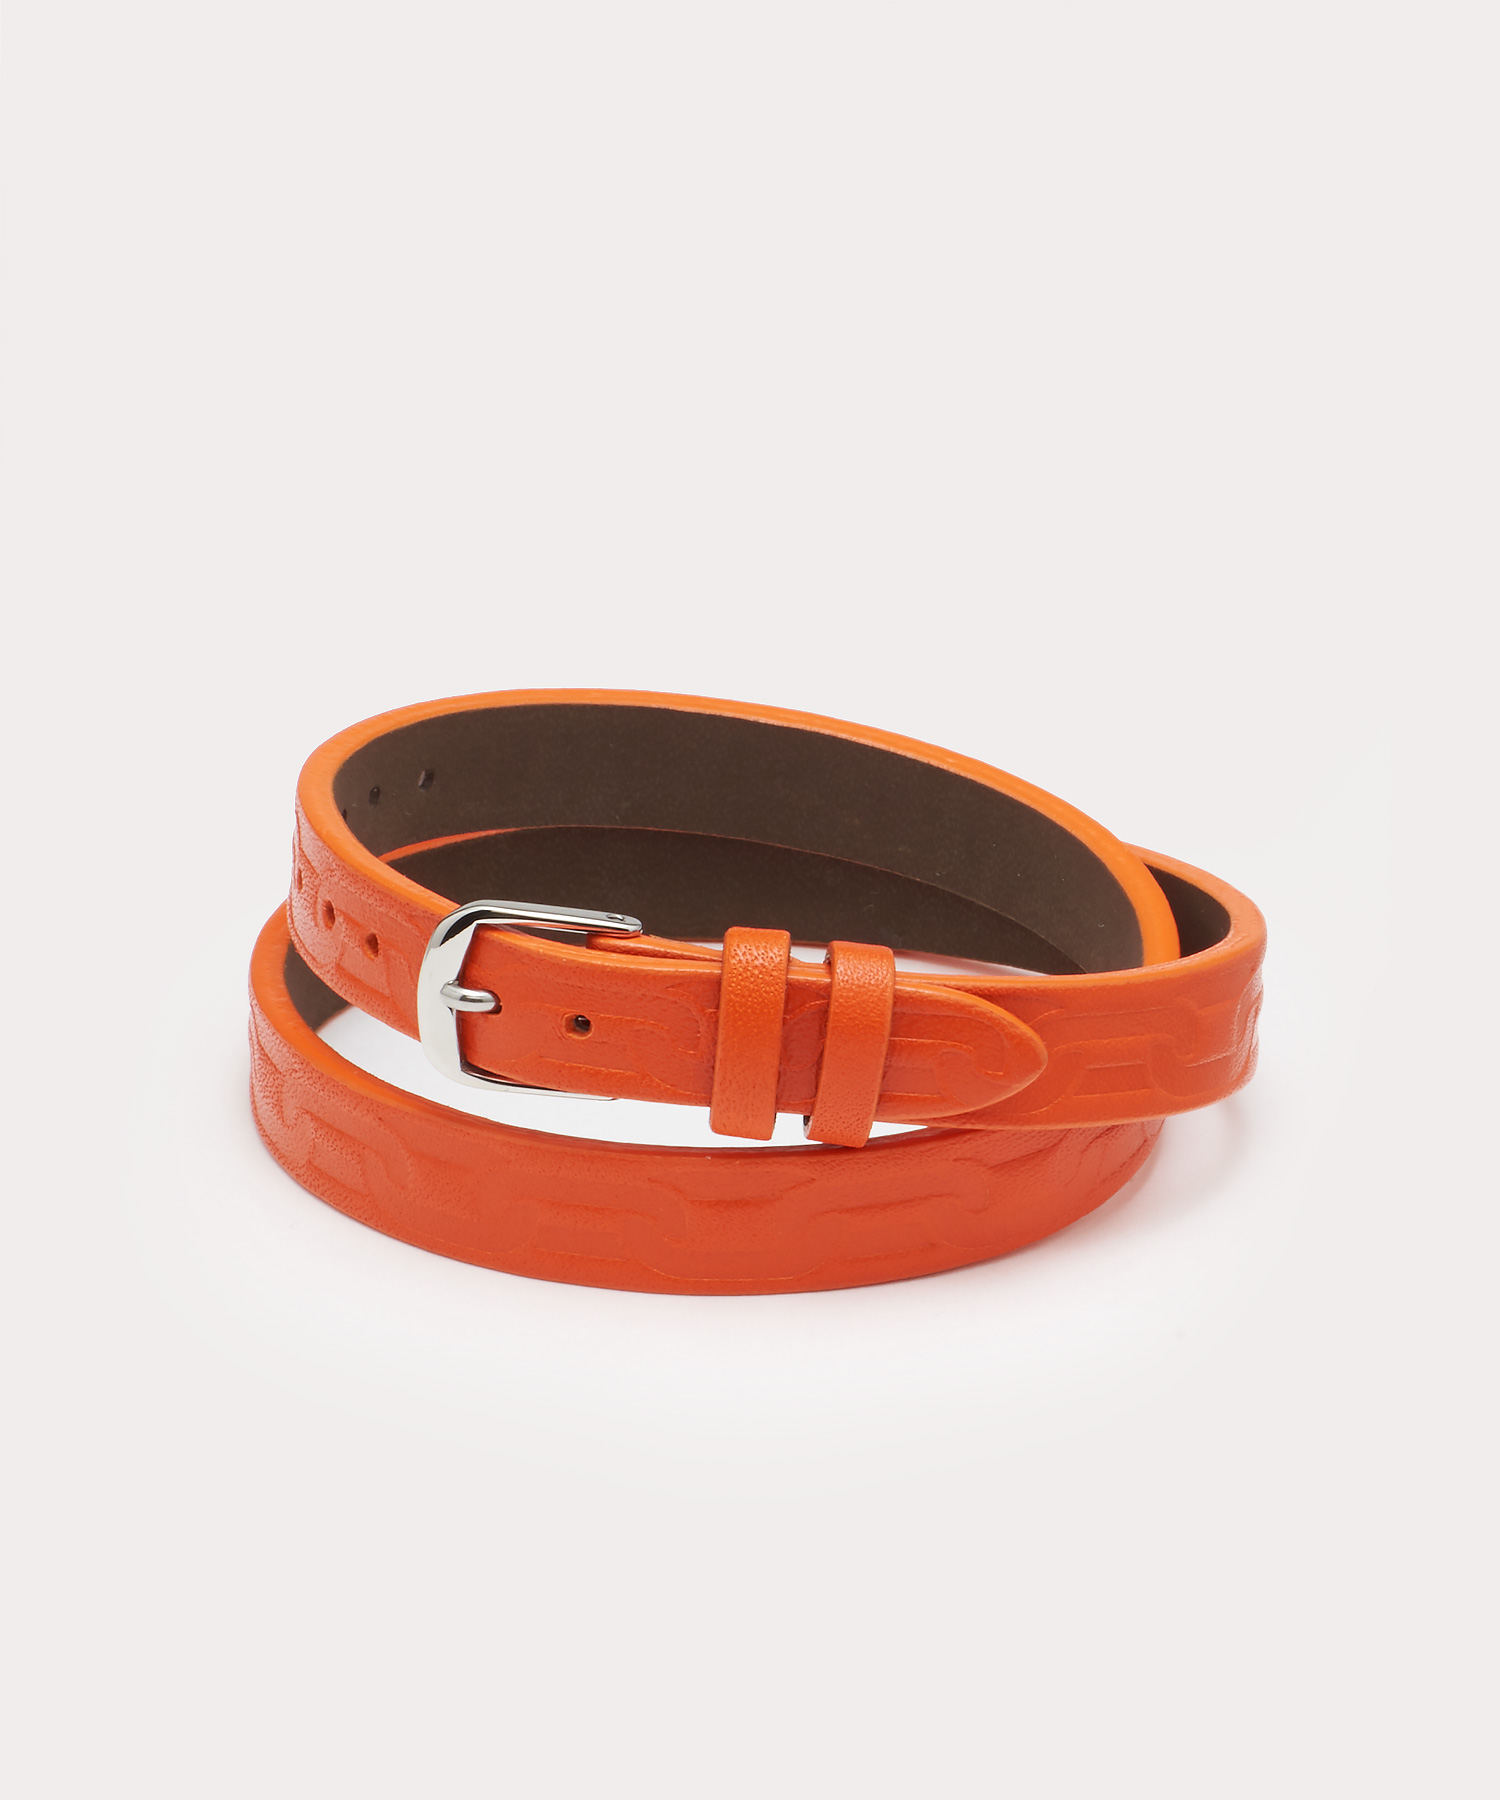 OVAL -Double strap- ウォッチ